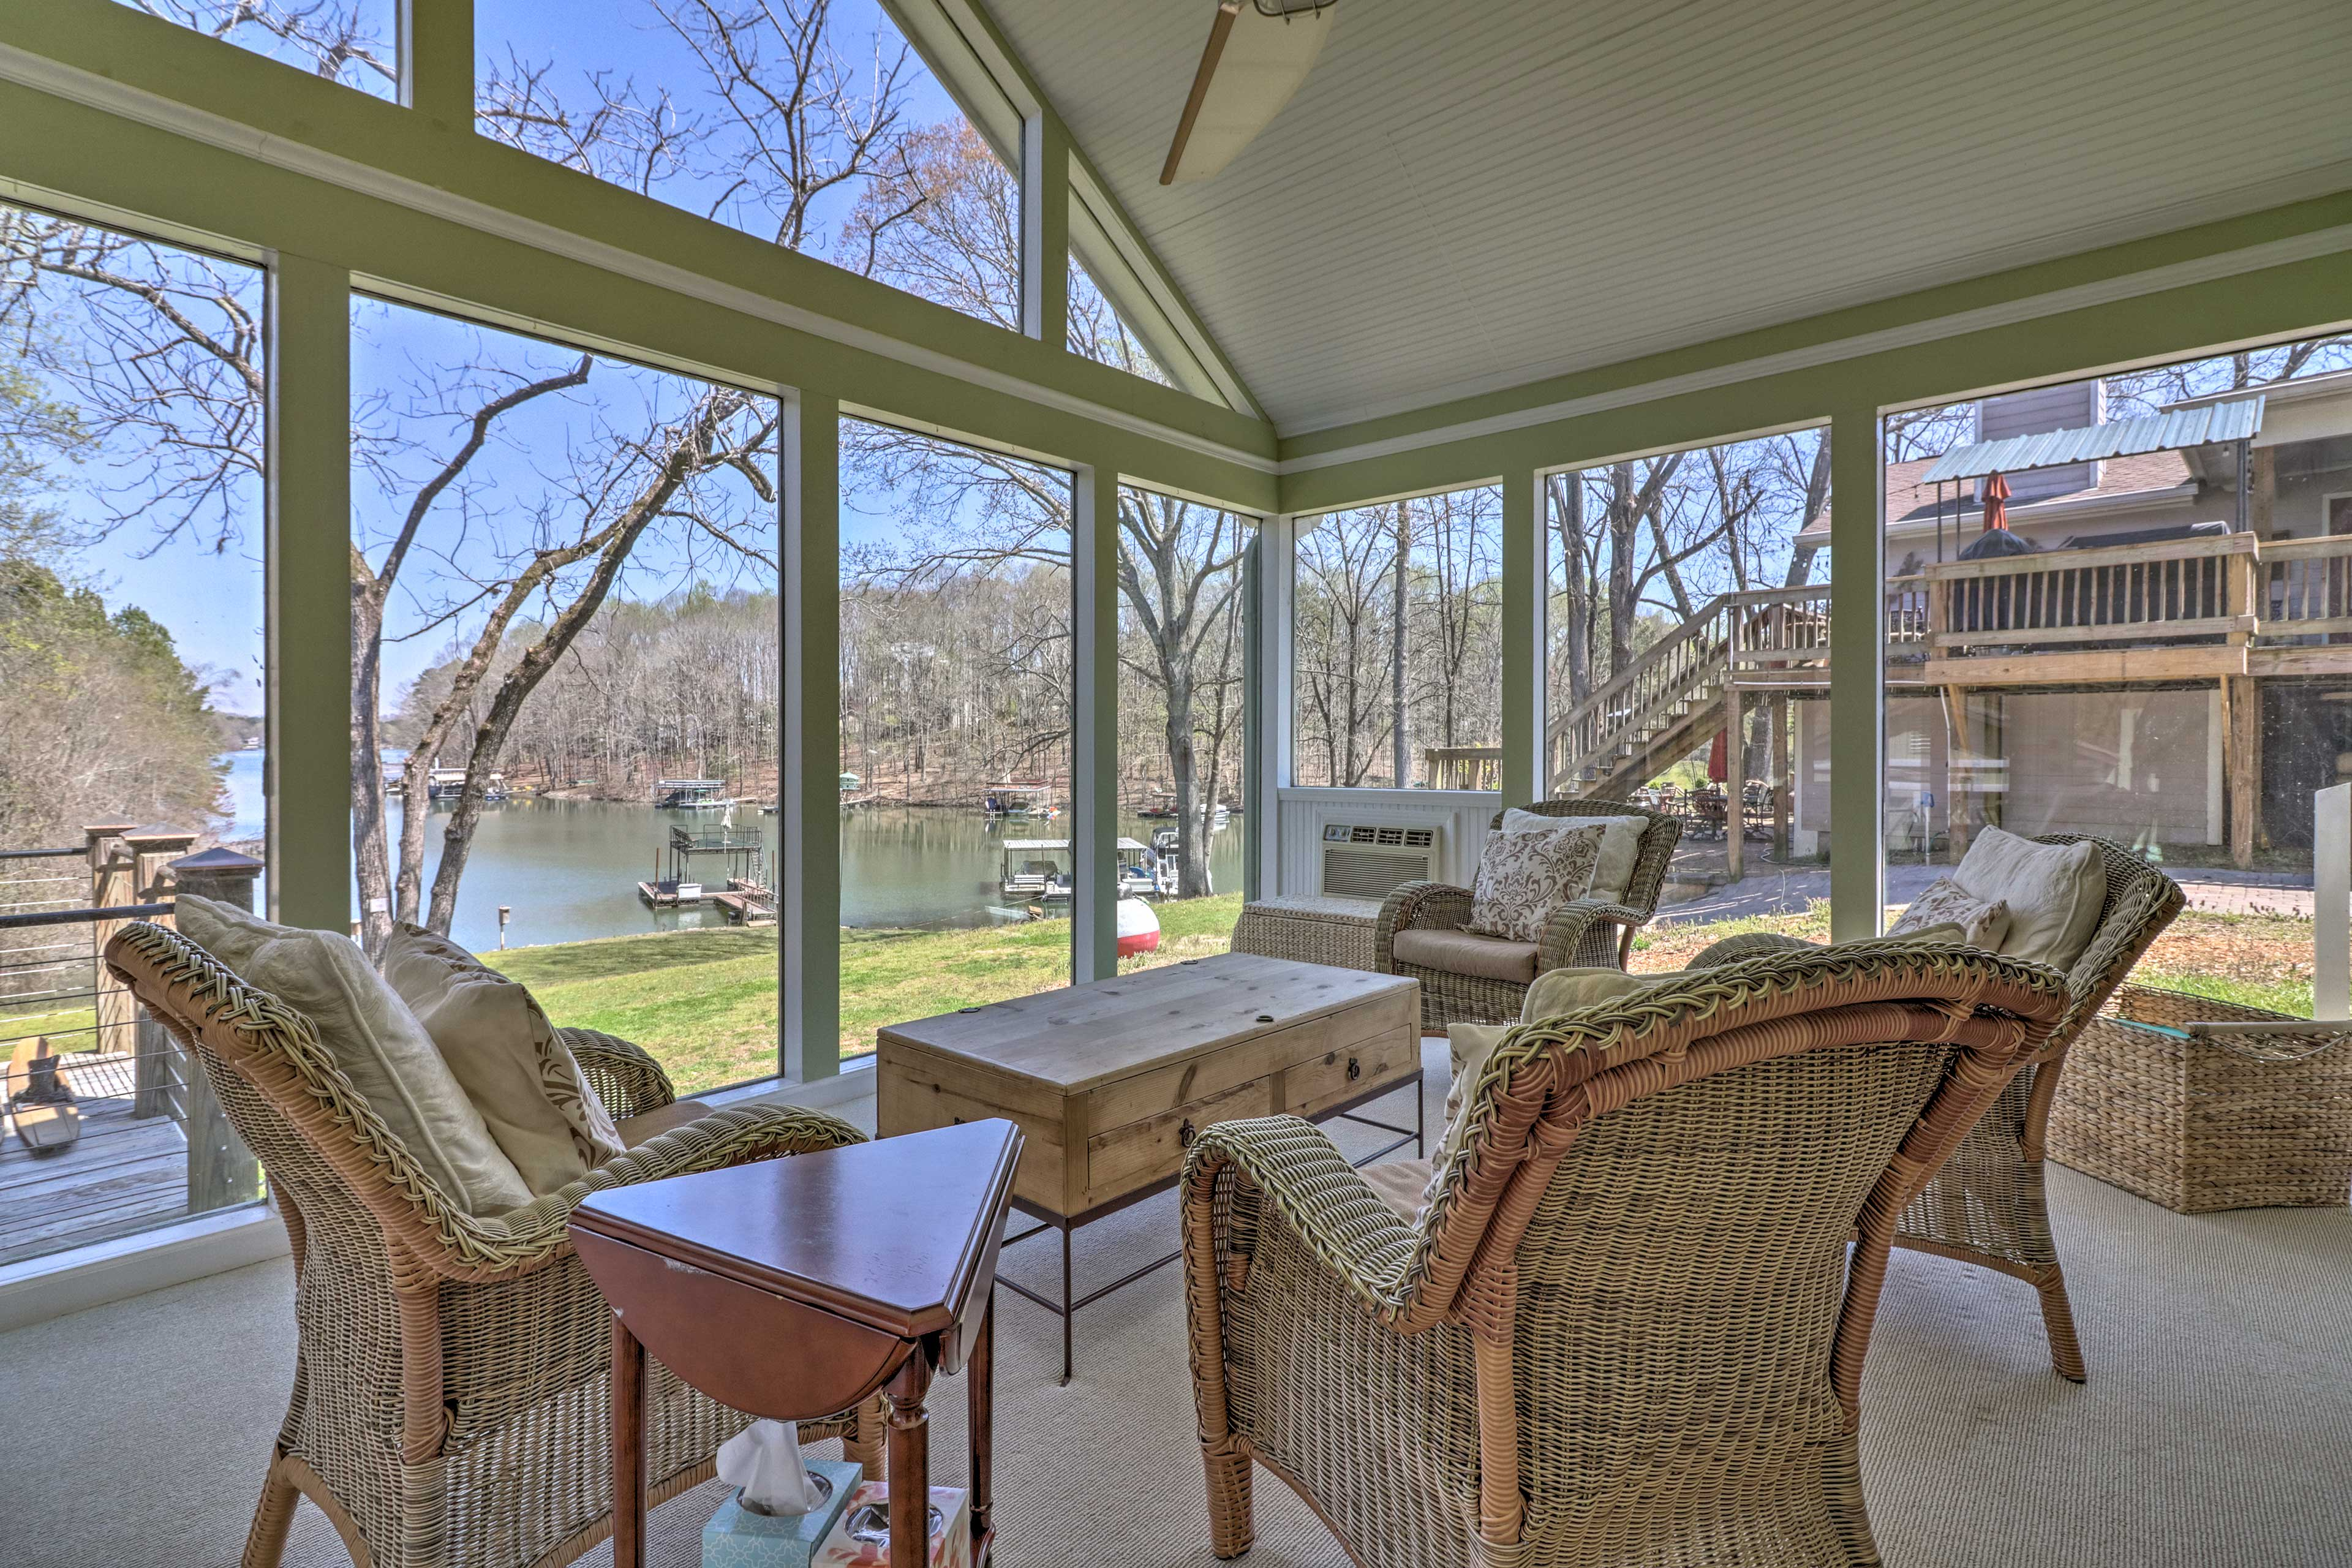 Soak in the scenic waterfront views from one of the chairs.